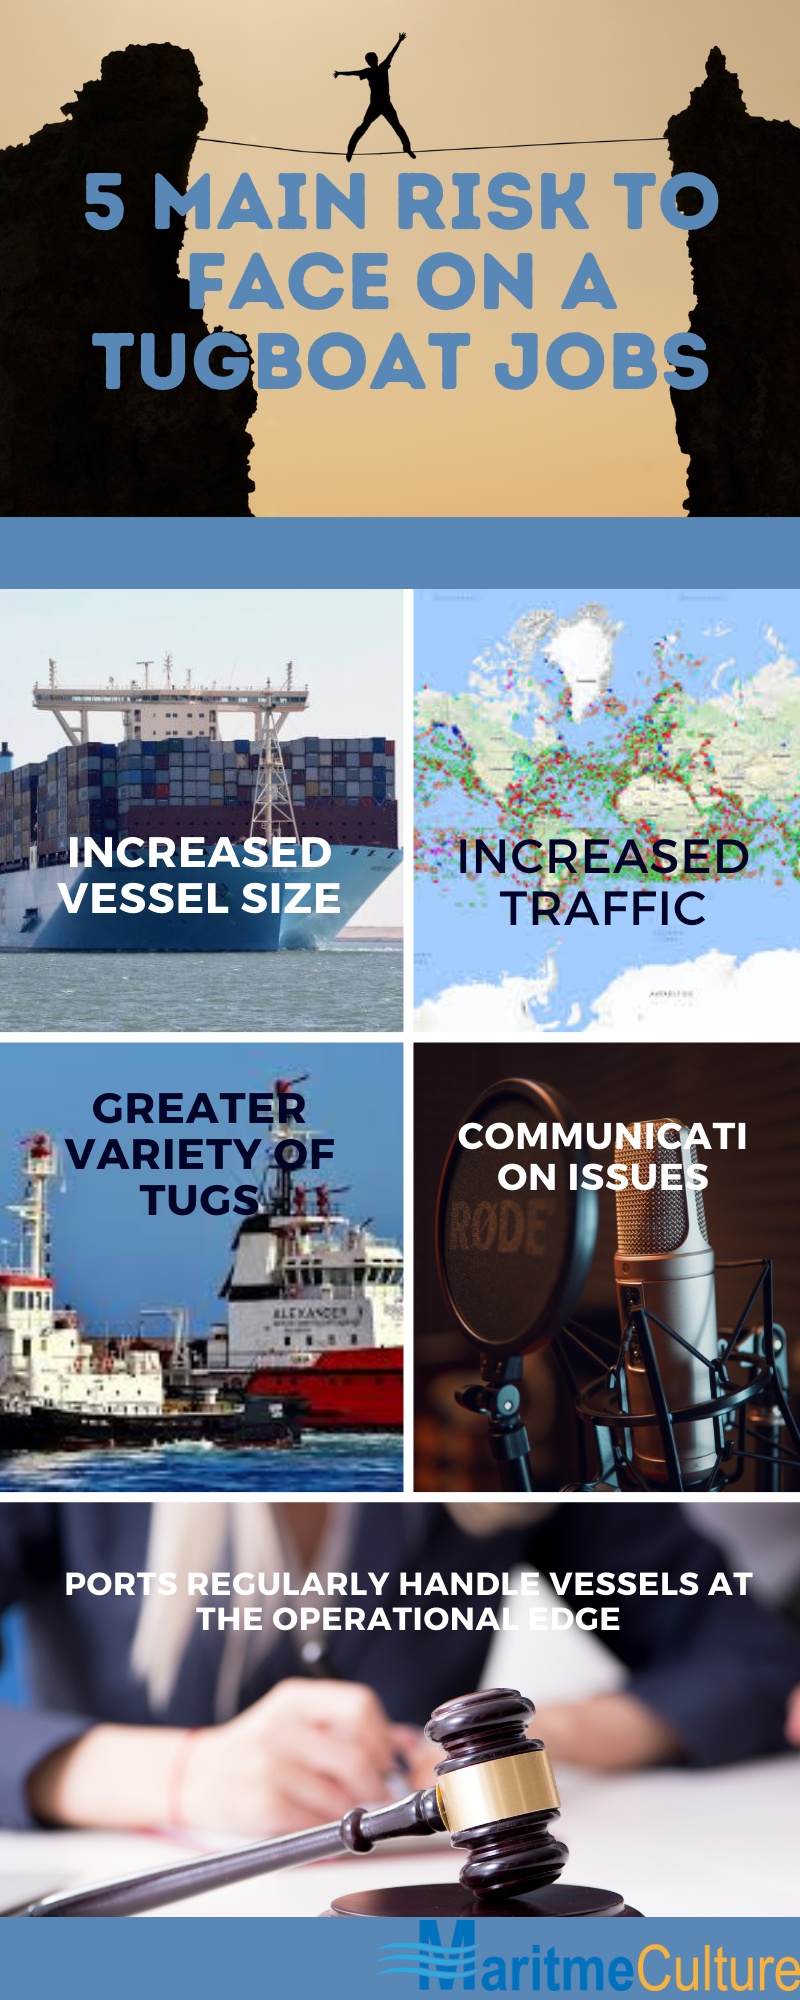 risk-tugboat-jobs-infographic